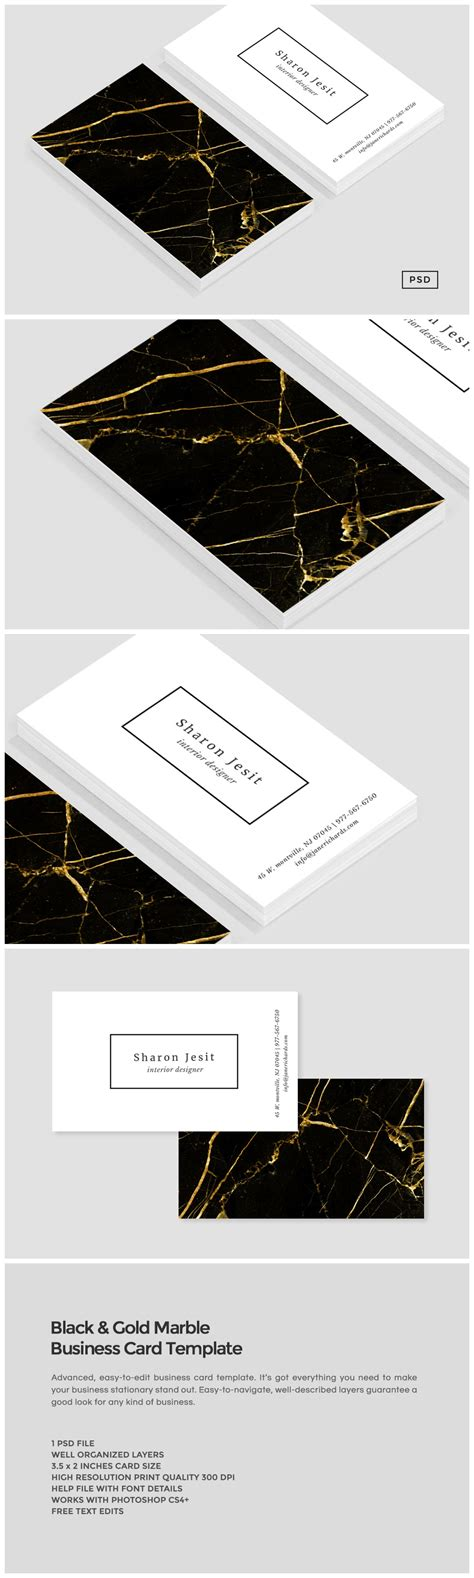 gold buisness card template black gold marble business card business card